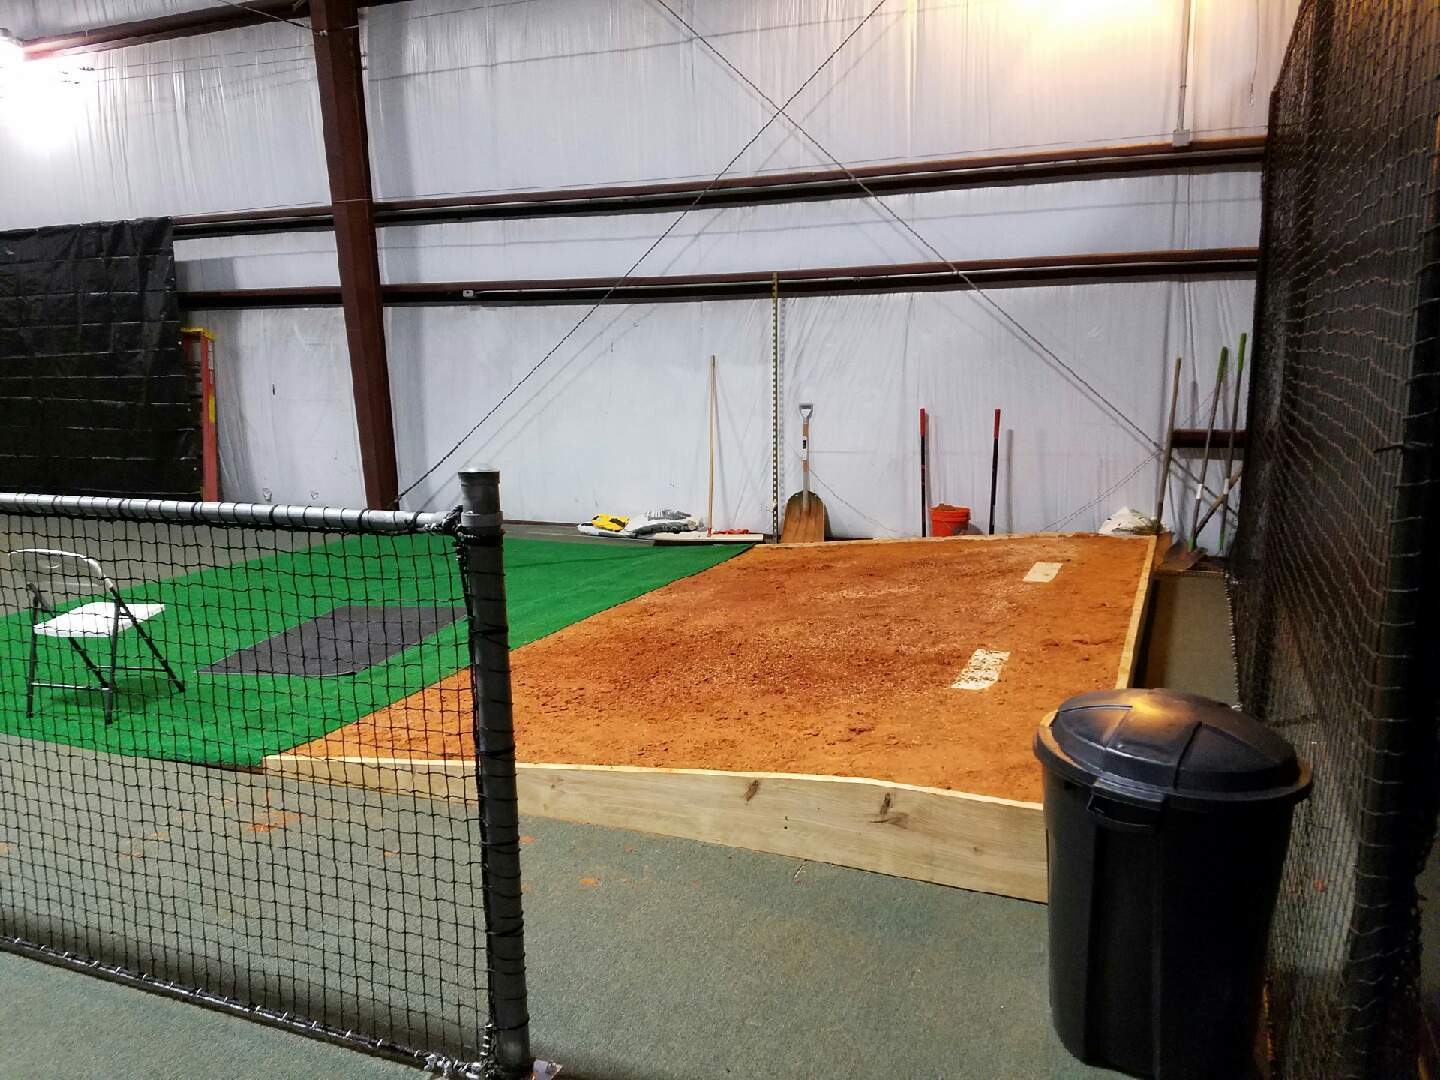 Baseball Mound Rentals - $40 per hr / $25 per 1/2-hr + $5 Repair Fee